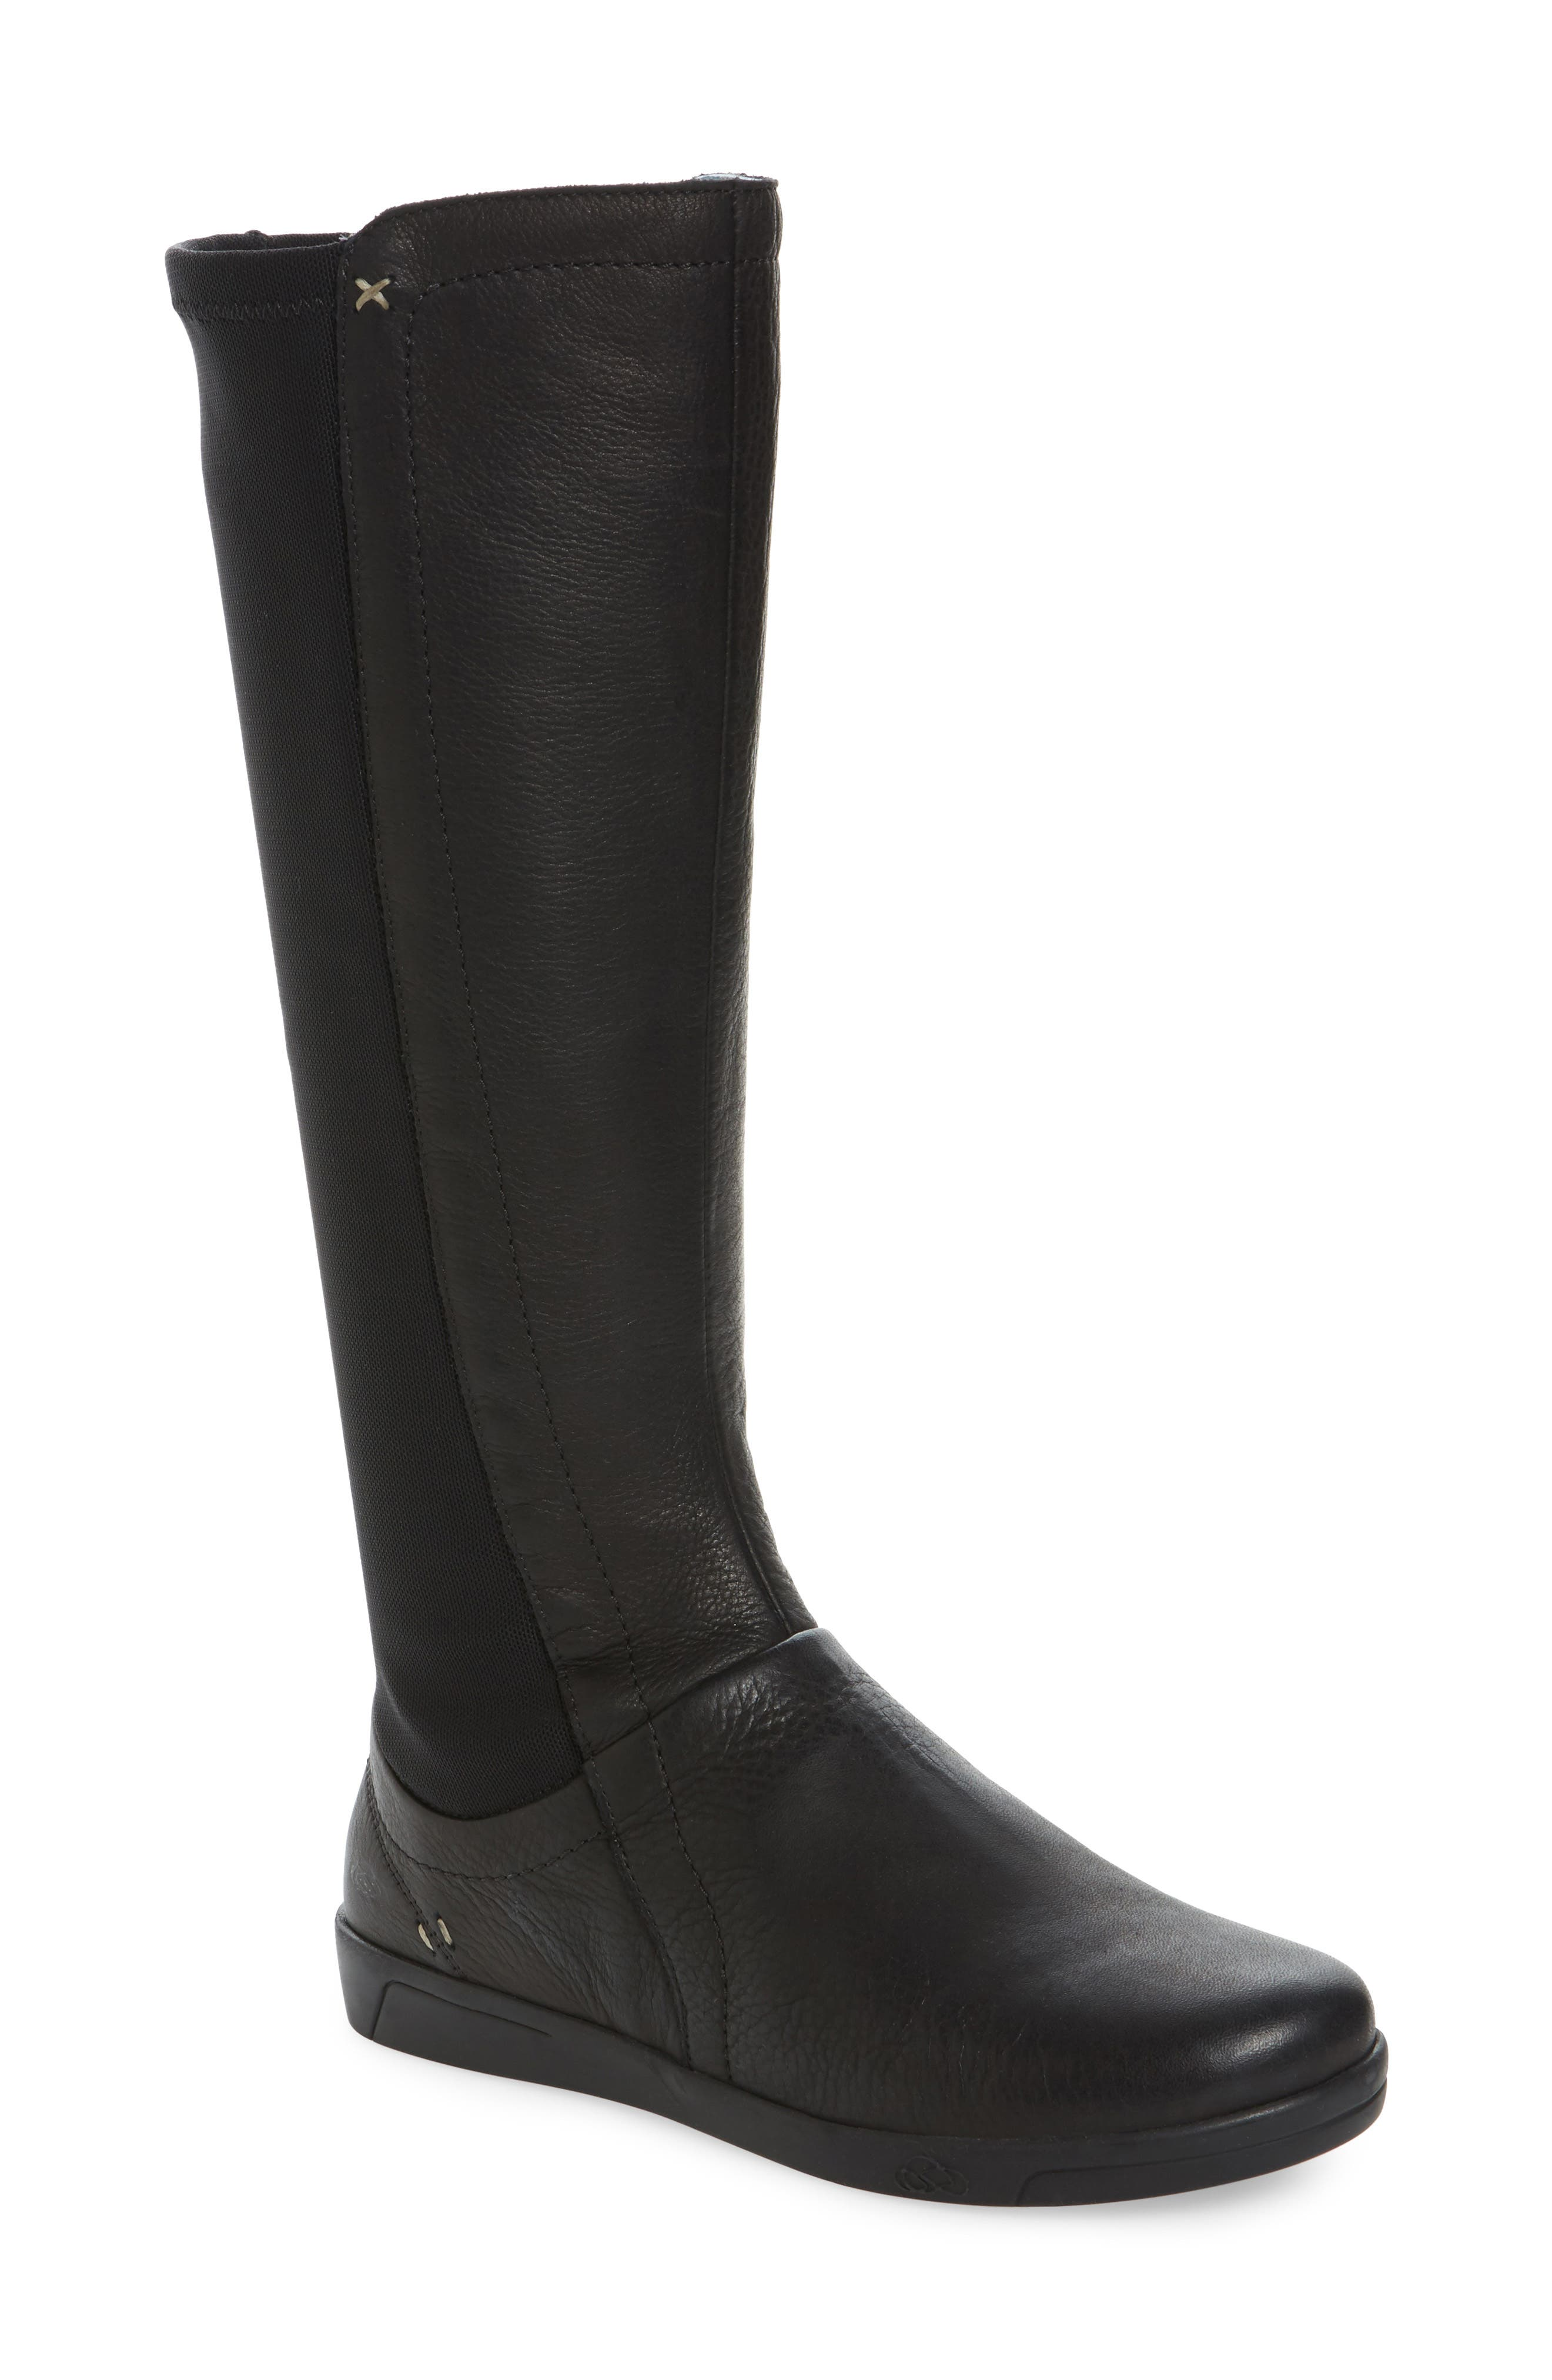 Ace Tall Boot,                             Main thumbnail 1, color,                             Black Leather